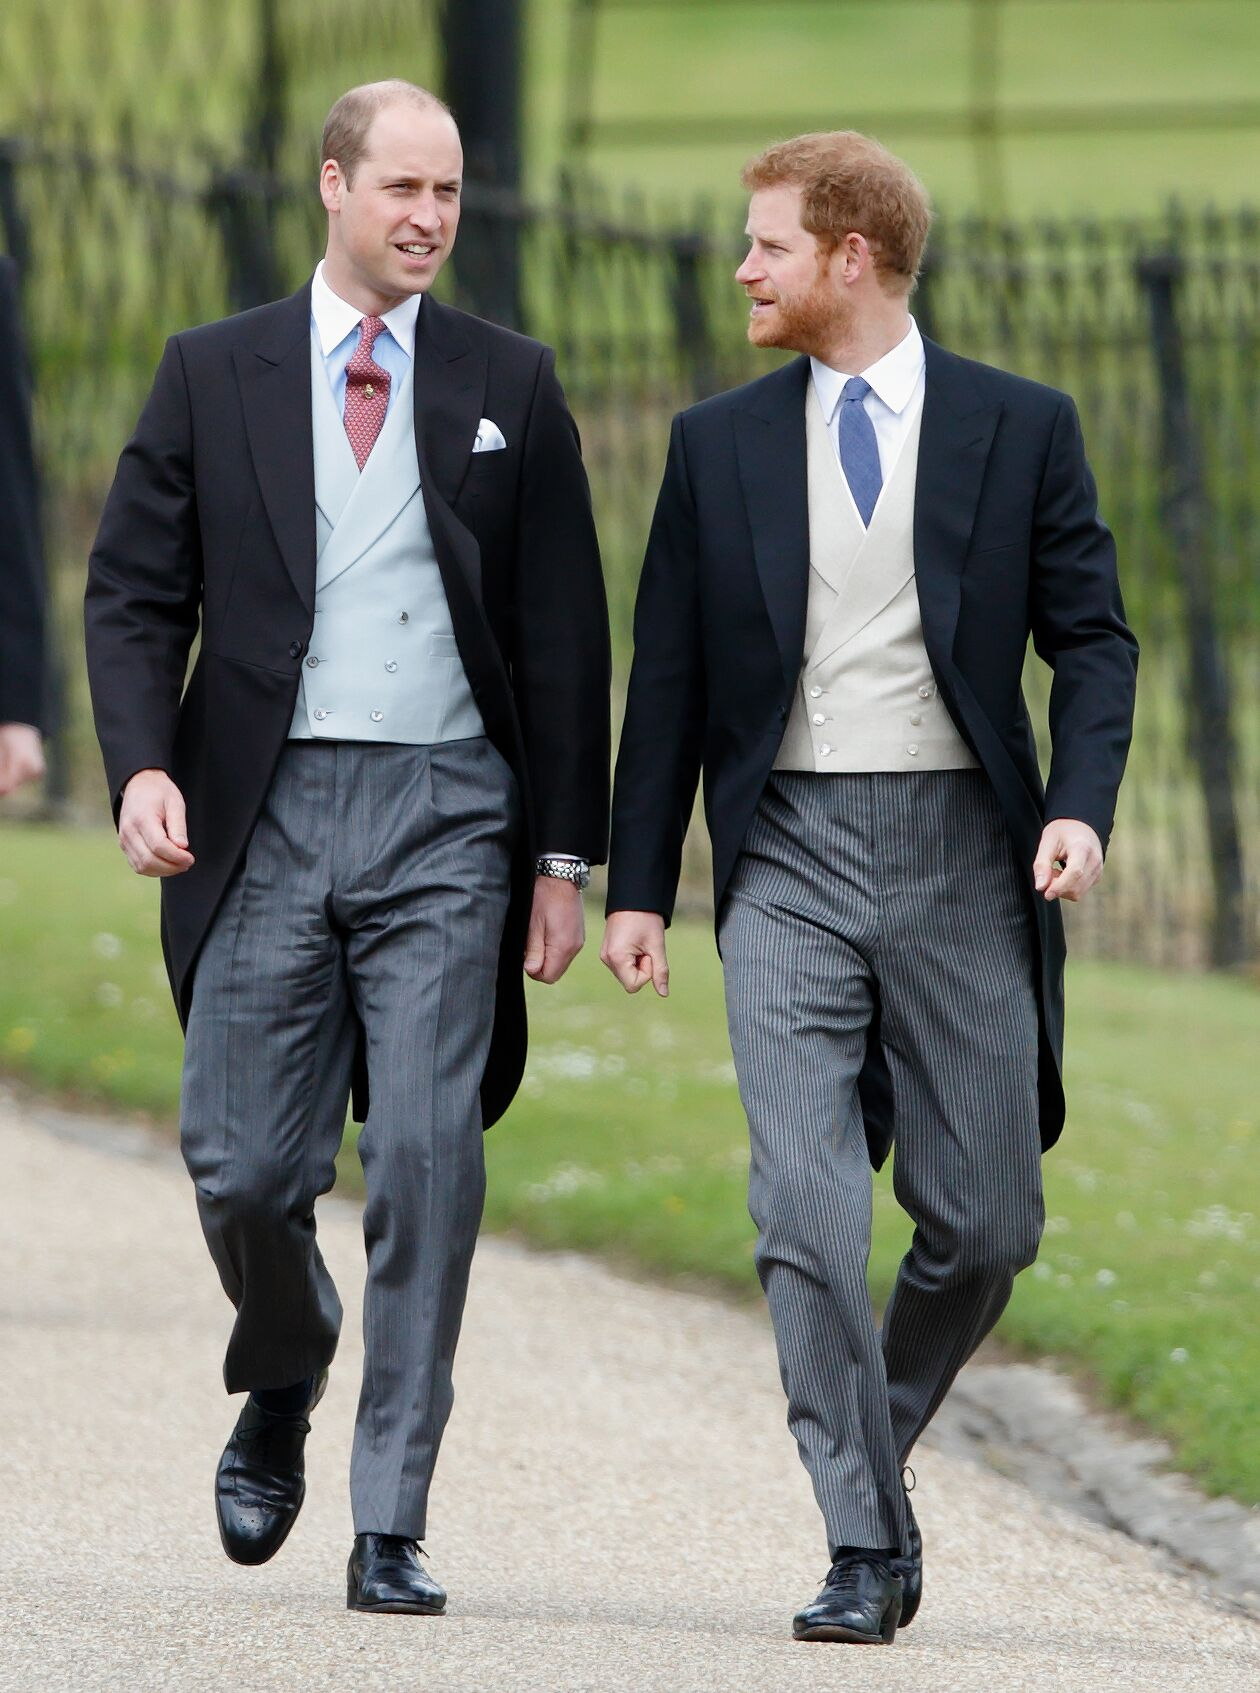 Prince William, Duke of Cambridge and Prince Harry attend the wedding of Pippa Middleton and James Matthews | Getty Images / Global Images Ukraine